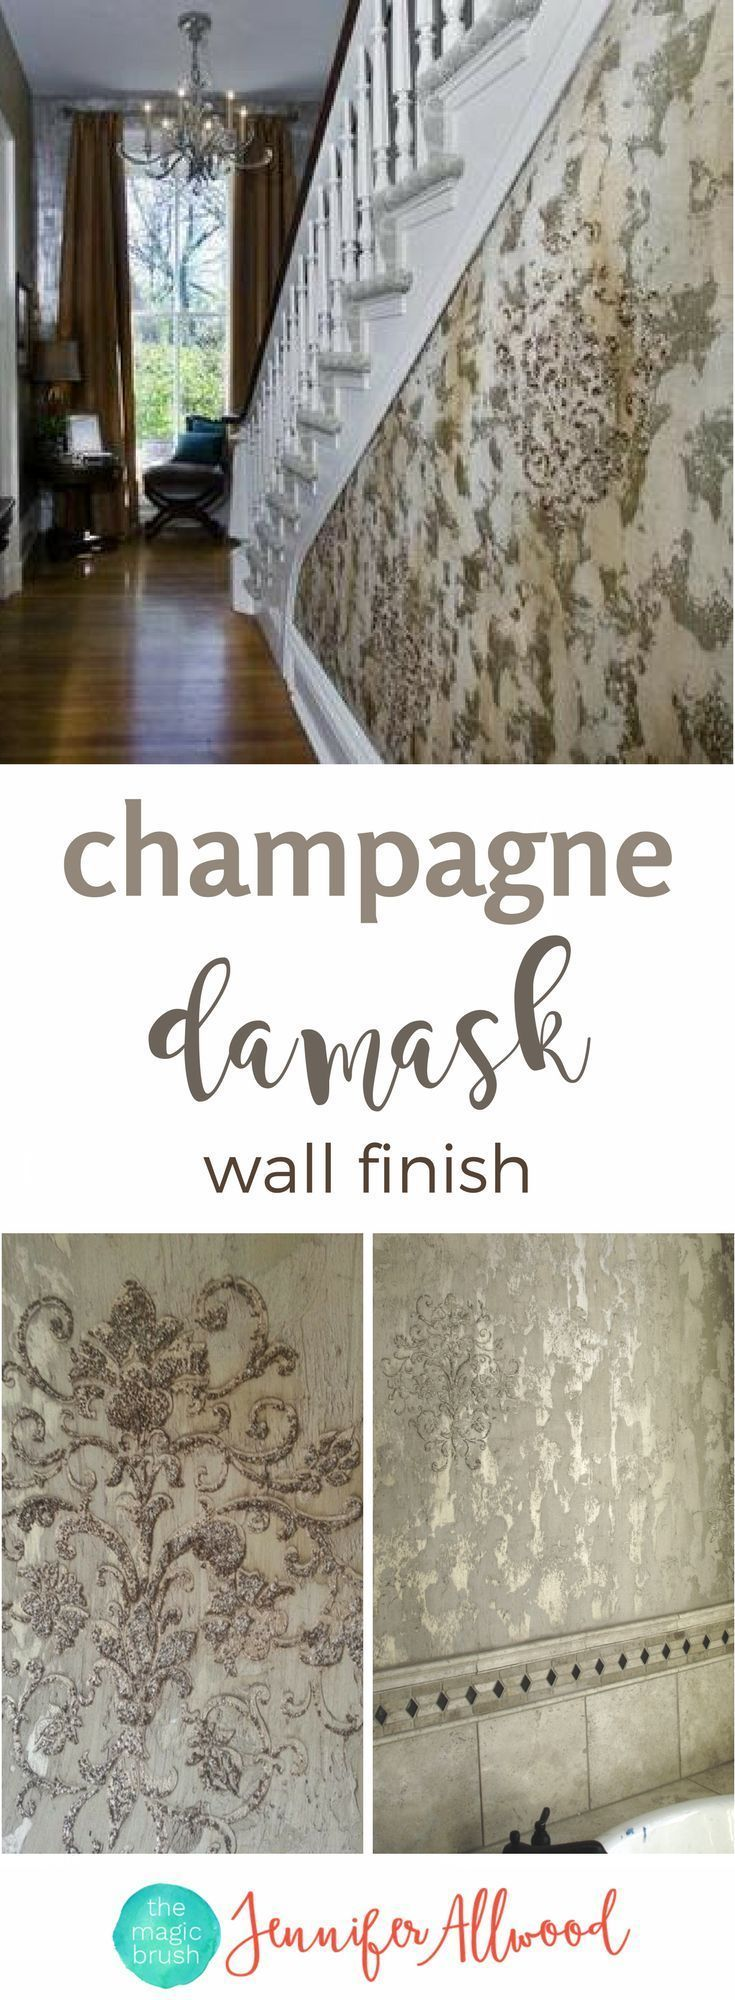 How to paint a champagne damask wall